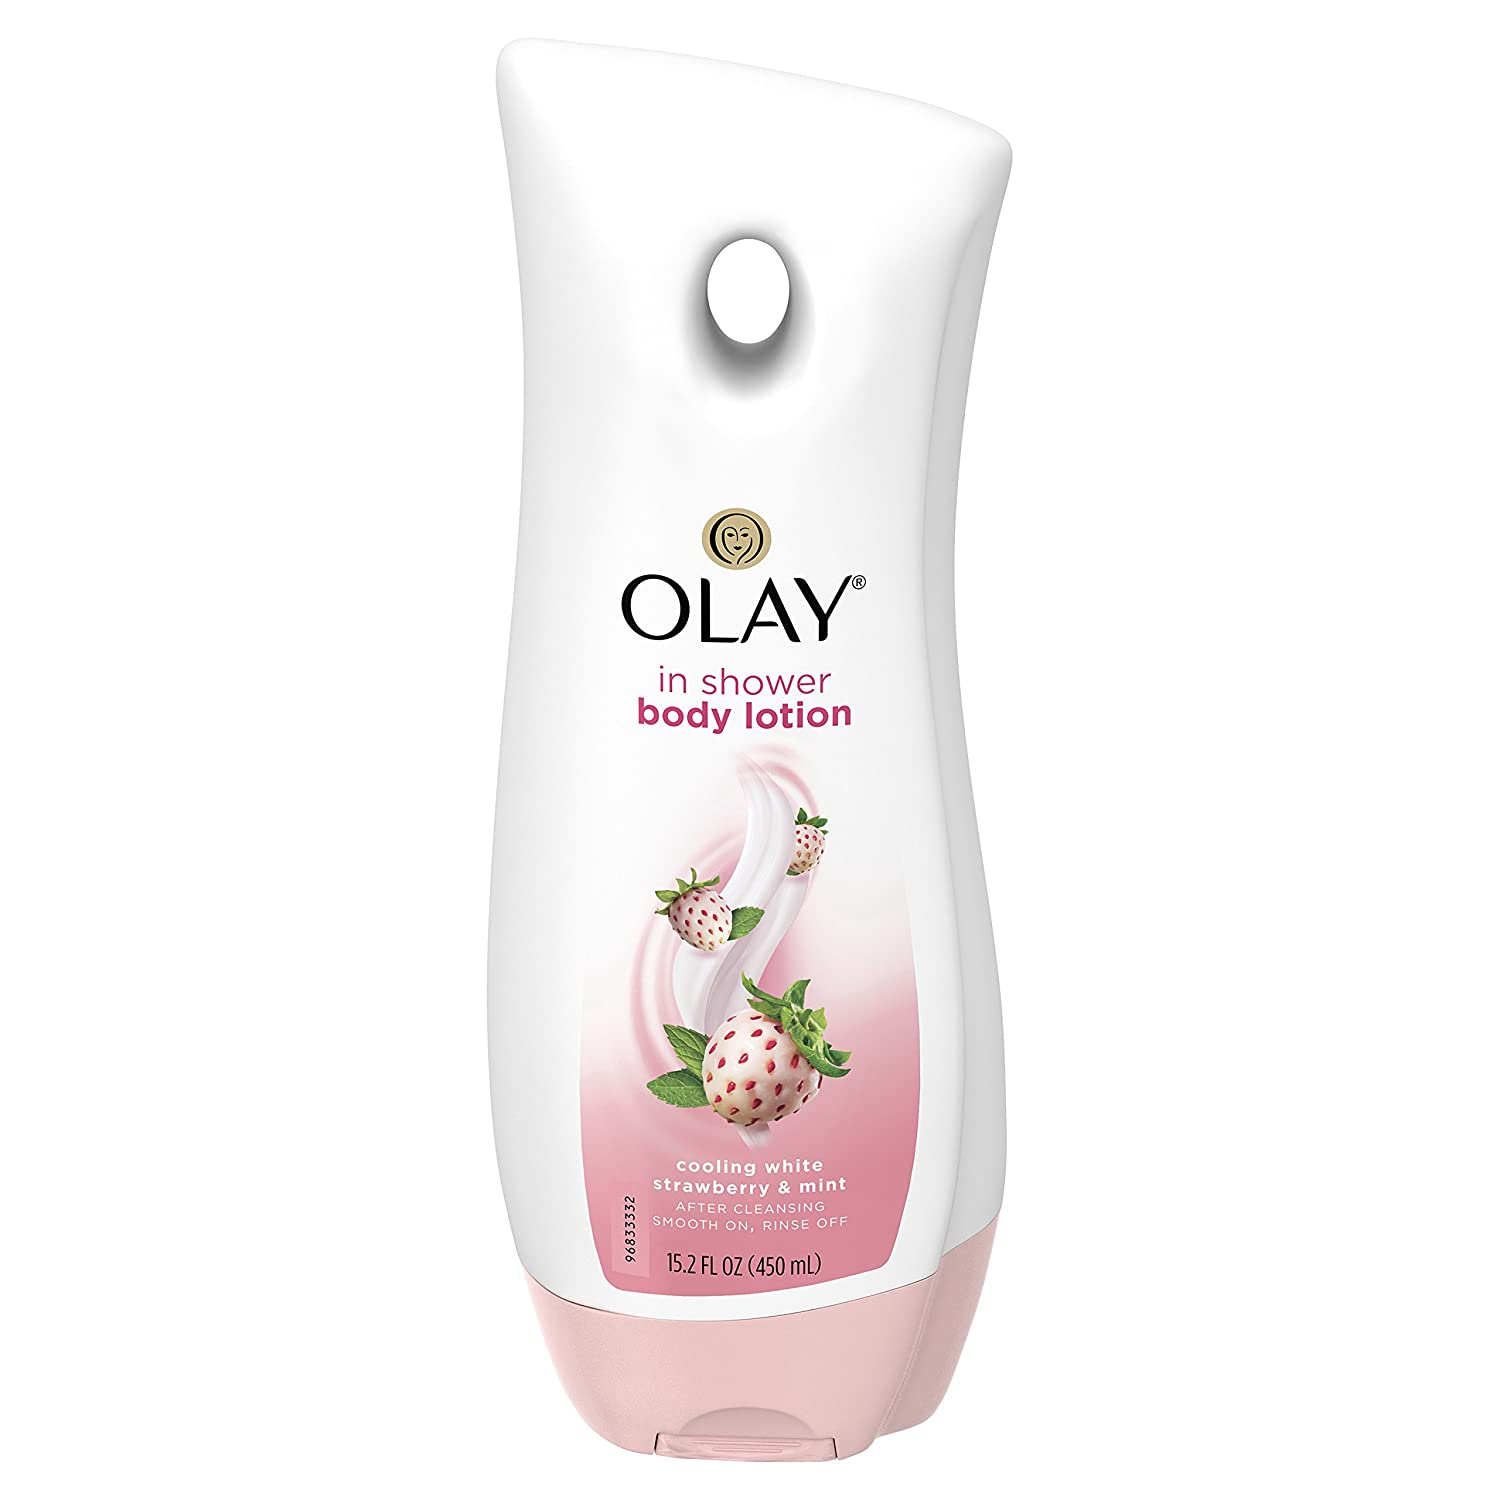 Olay Quench Cooling White Strawberry & Mint Body Lotion, 20.2 fl oz (Packaging May Vary)